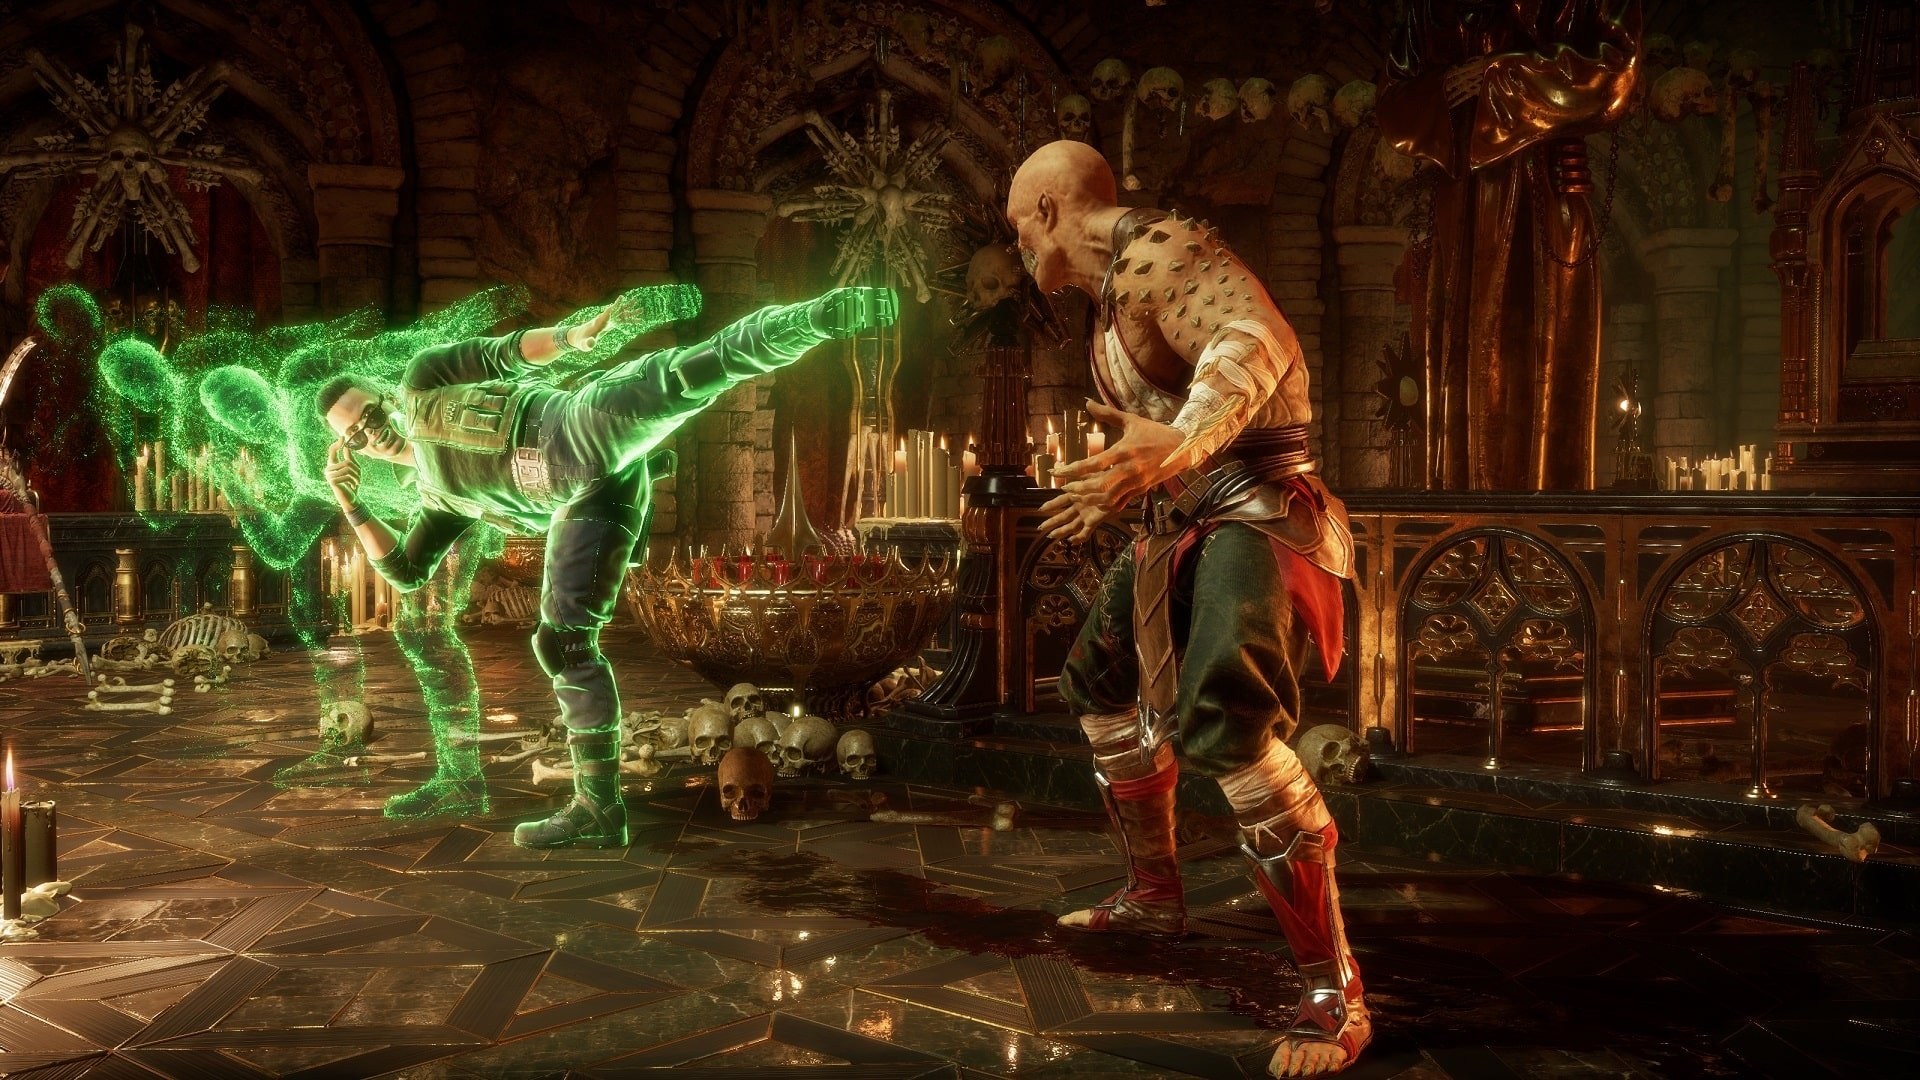 Mortal Kombat 11's PC launch has been rough for Steam users